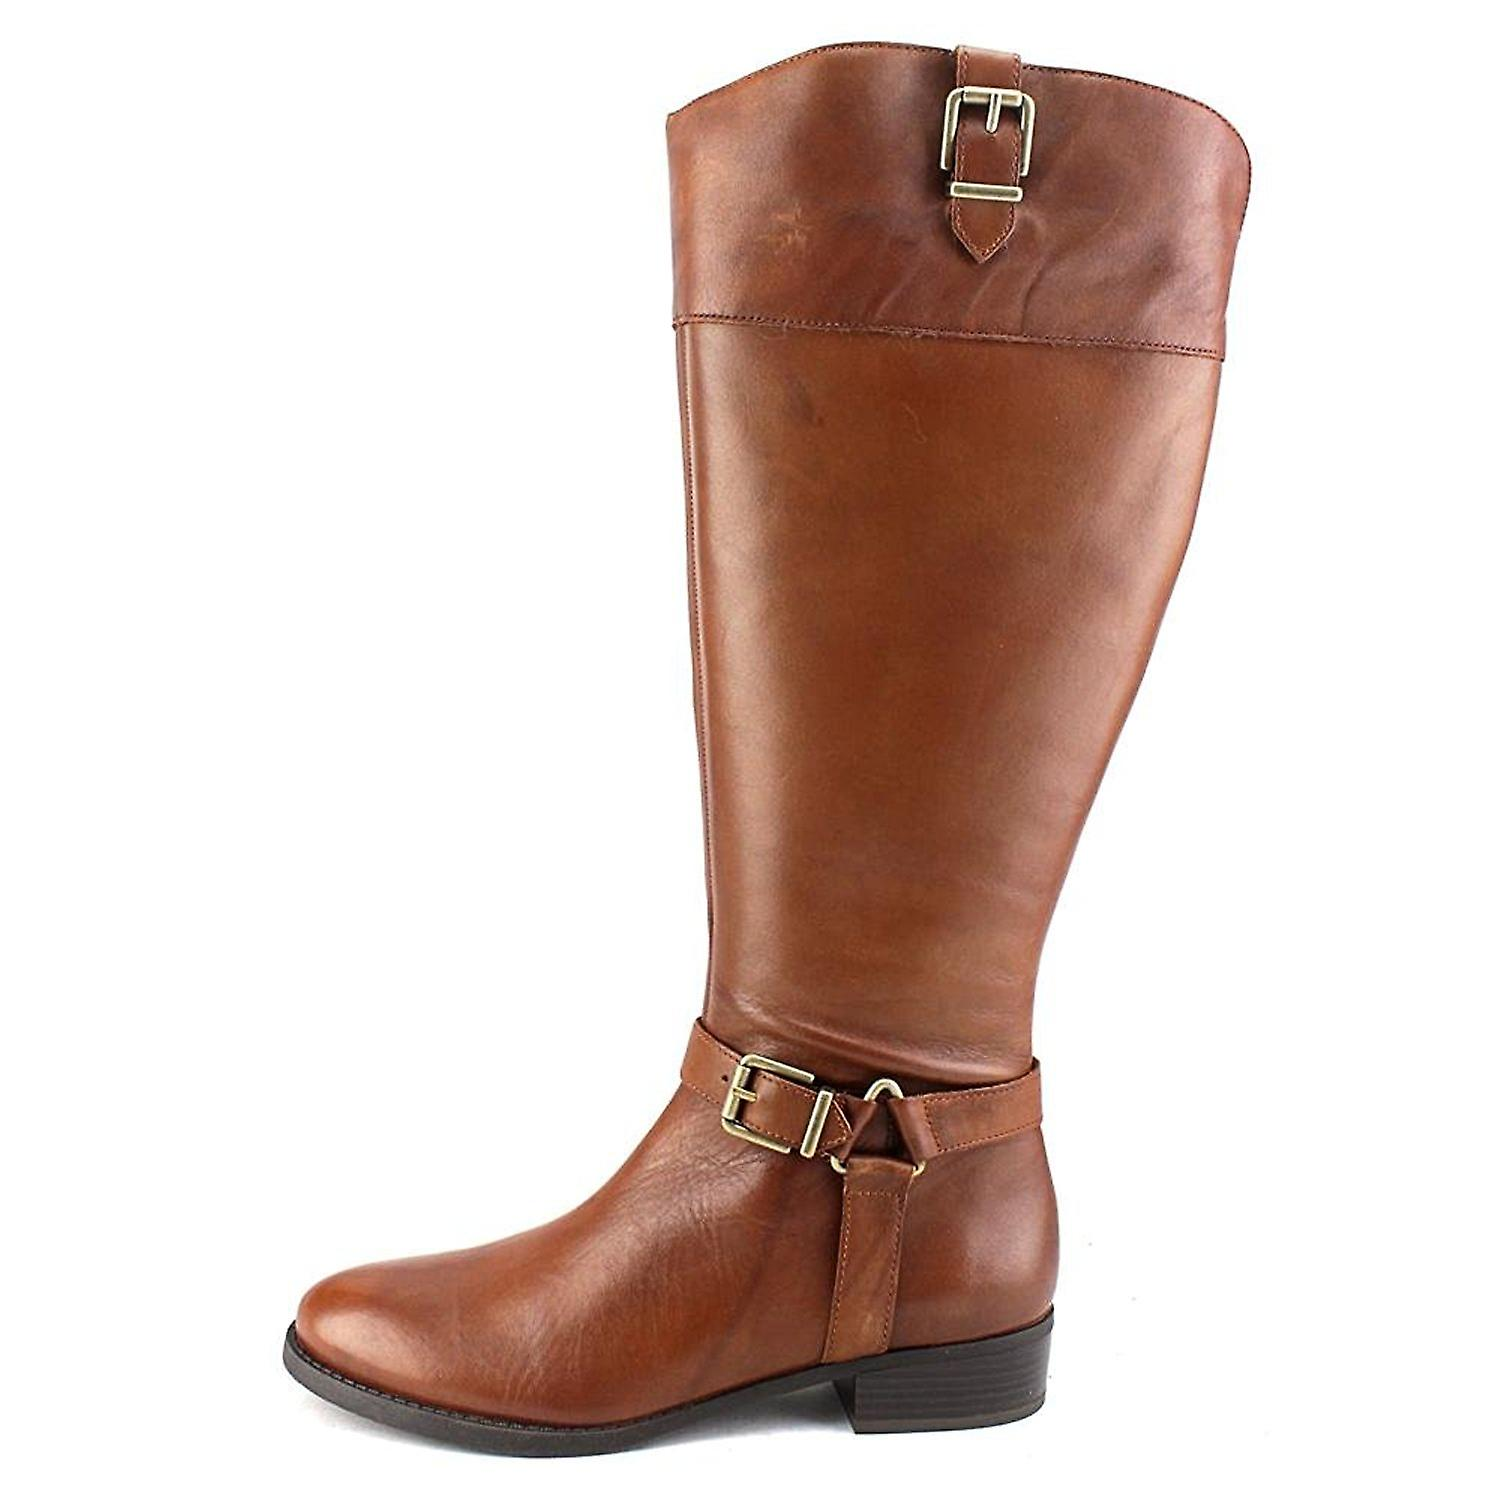 INC International Concepts Womens Fedee Leather Closed Toe Knee High Fashion ... 6lAut